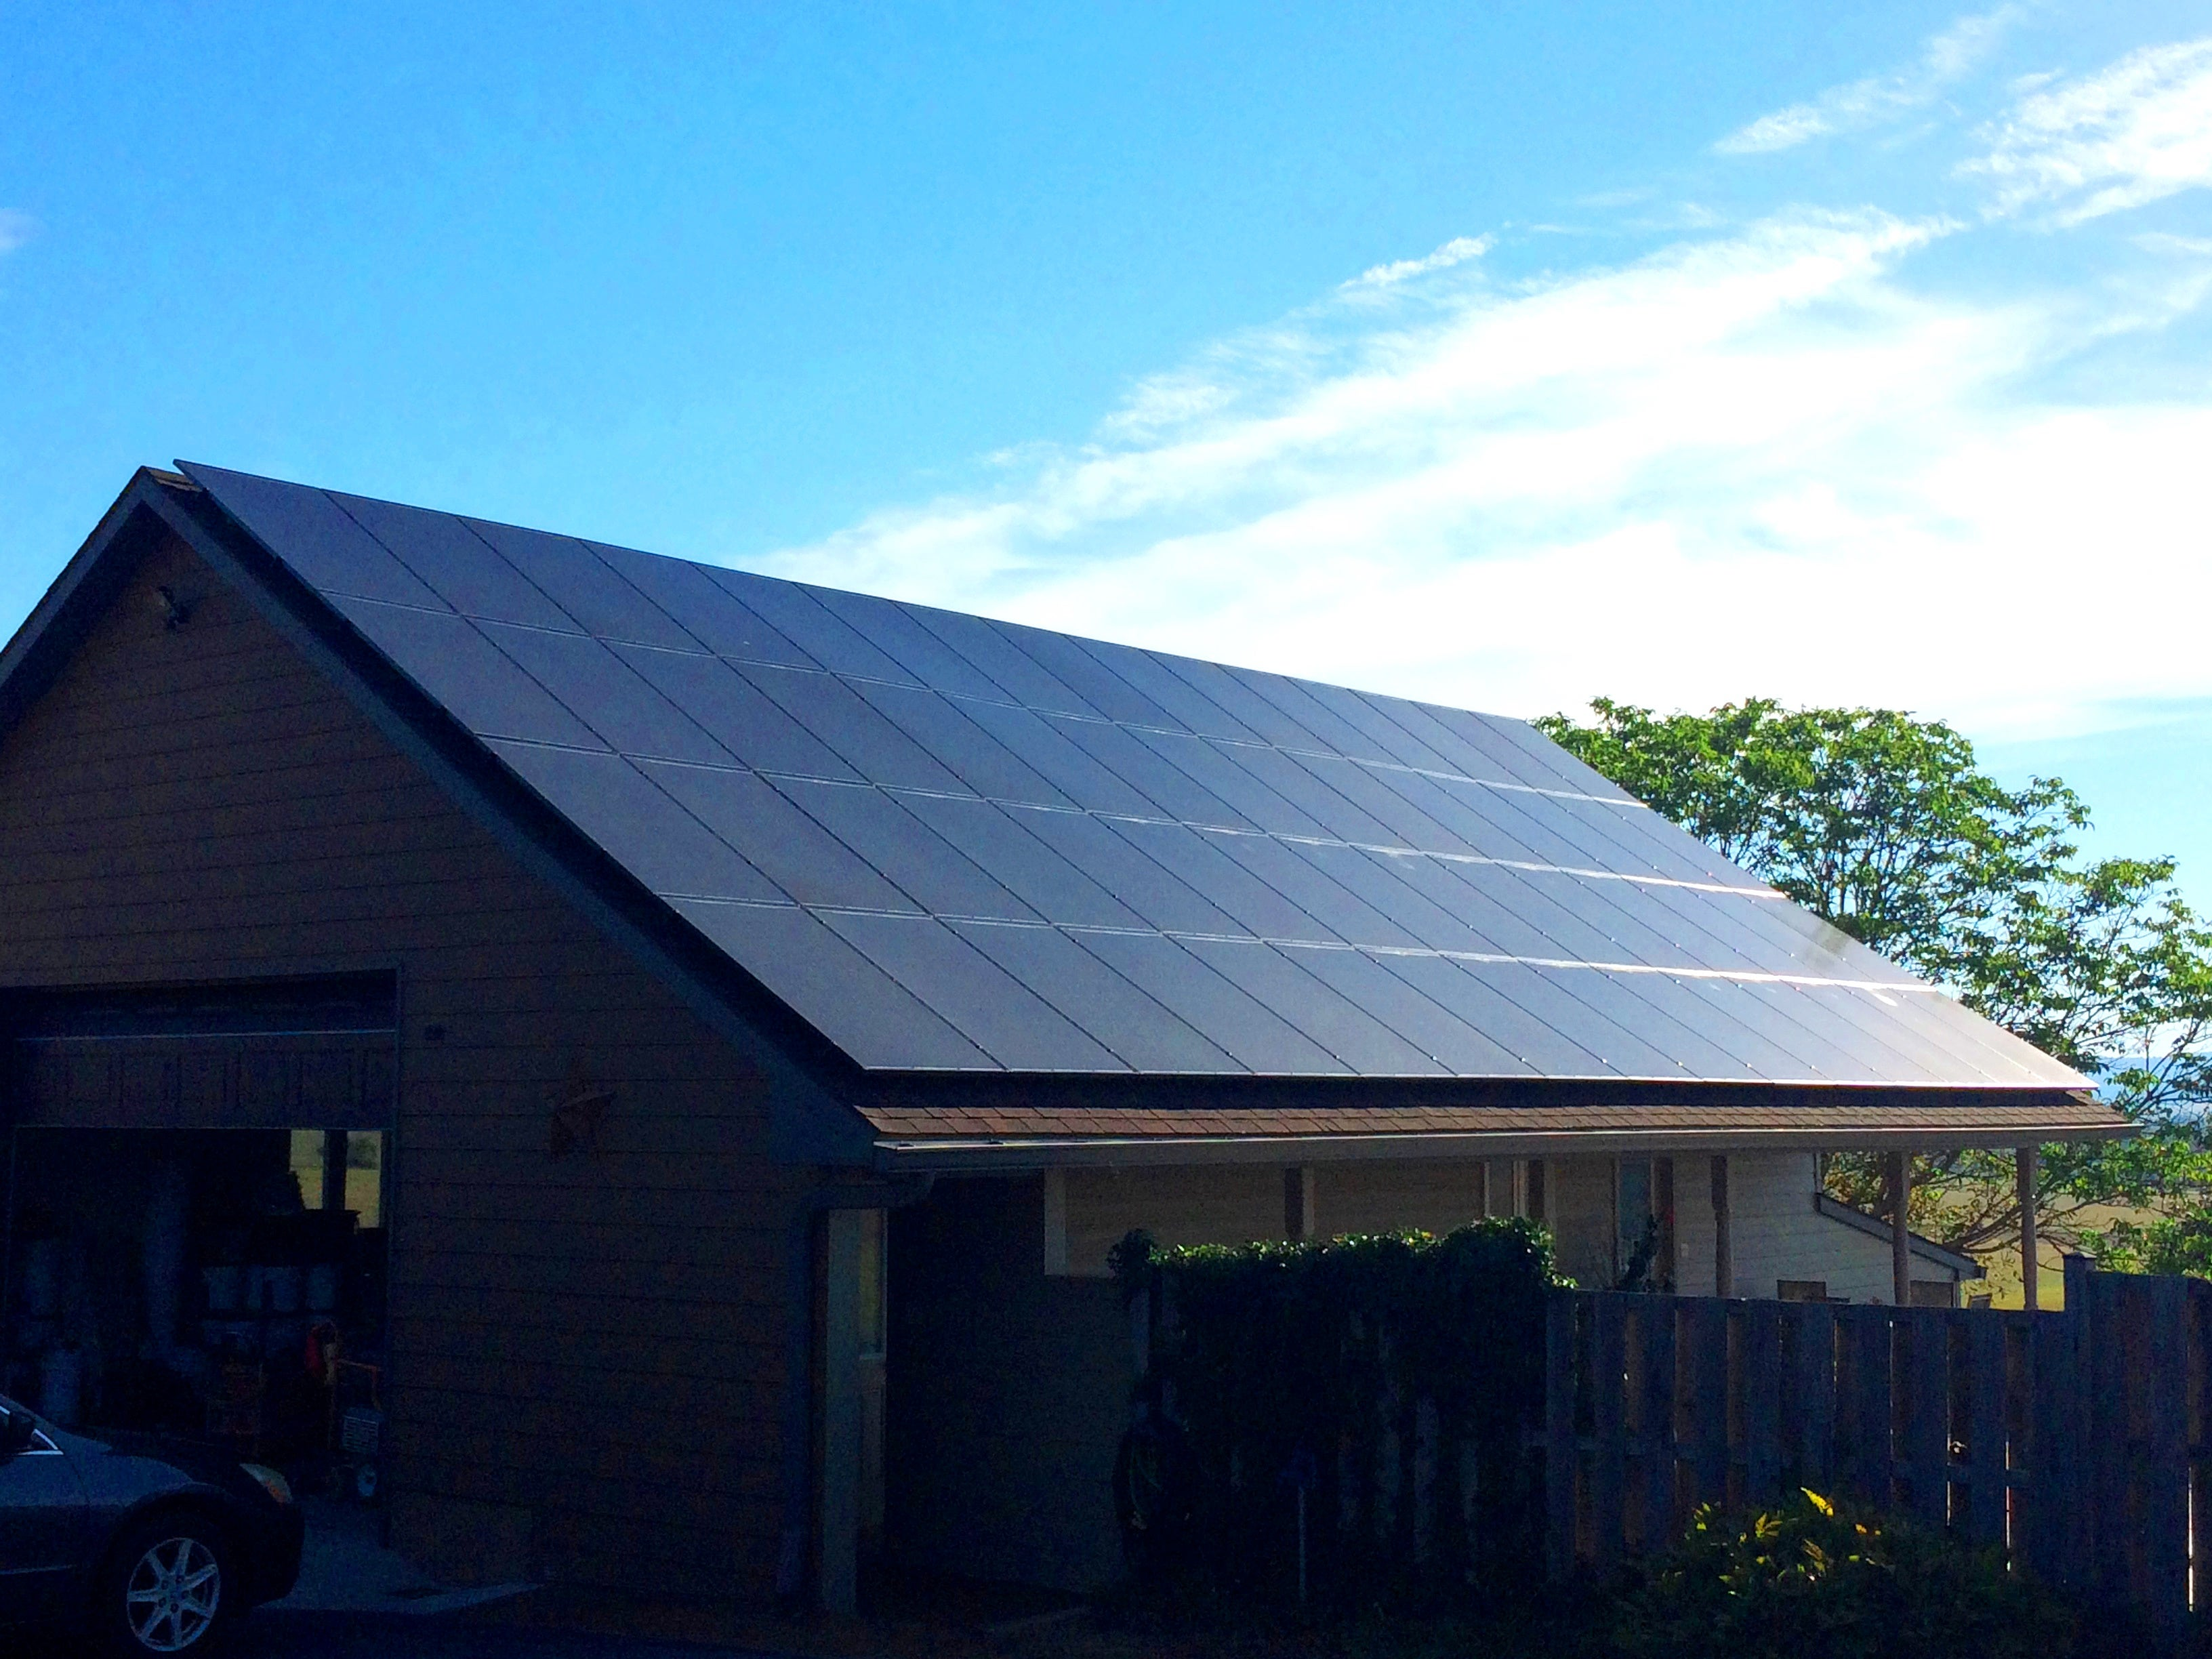 Pool house system in Jefferson, MD- 17.1 kW